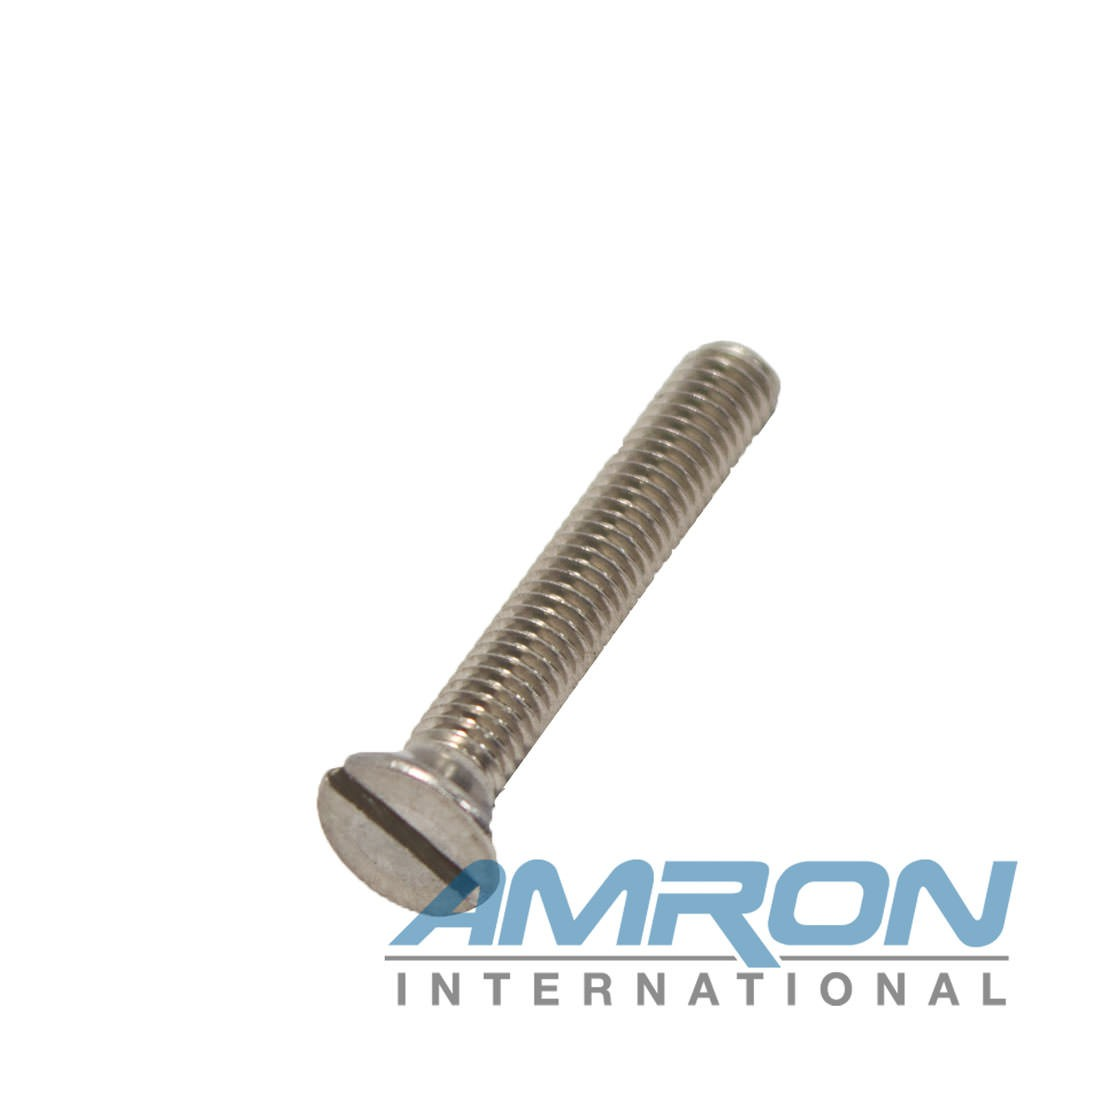 Kirby Morgan 530-050 Screw